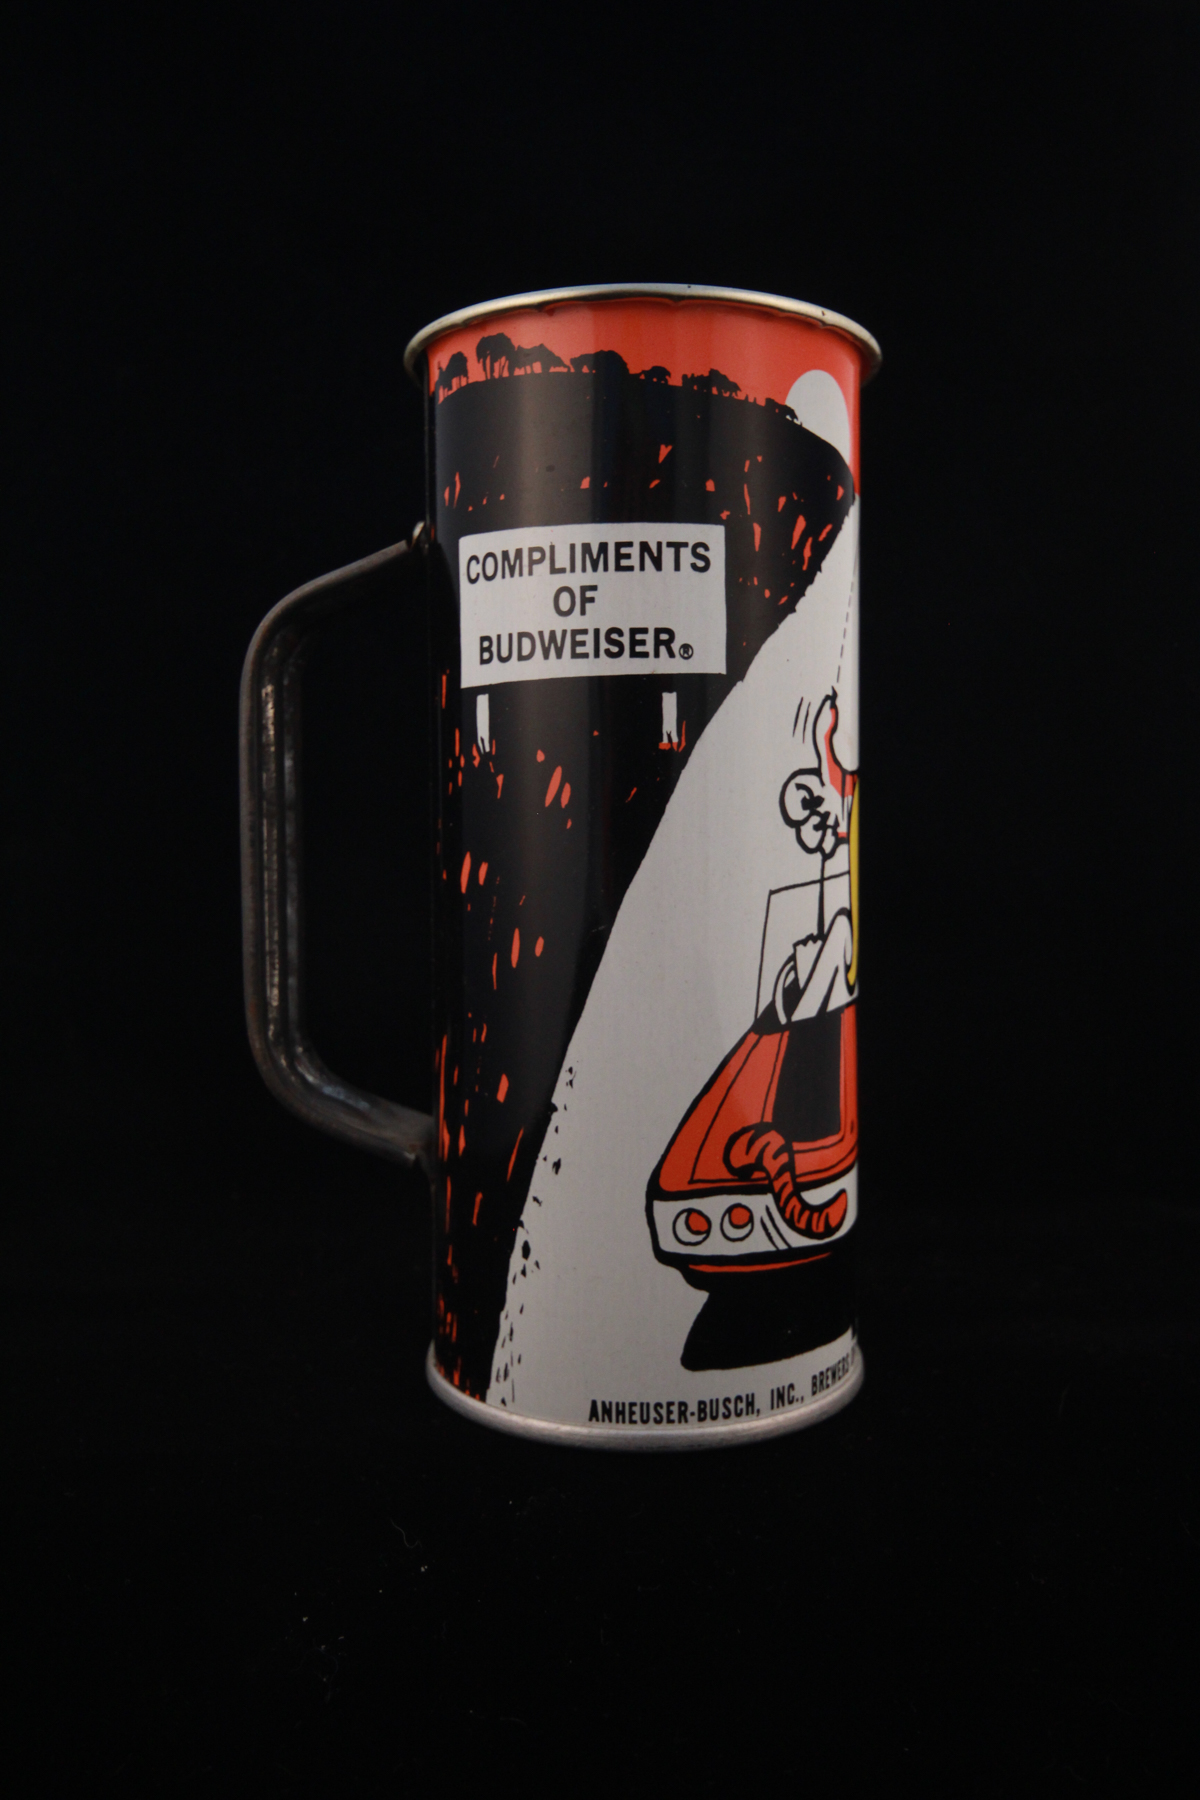 Beer Can 1966 Side Two